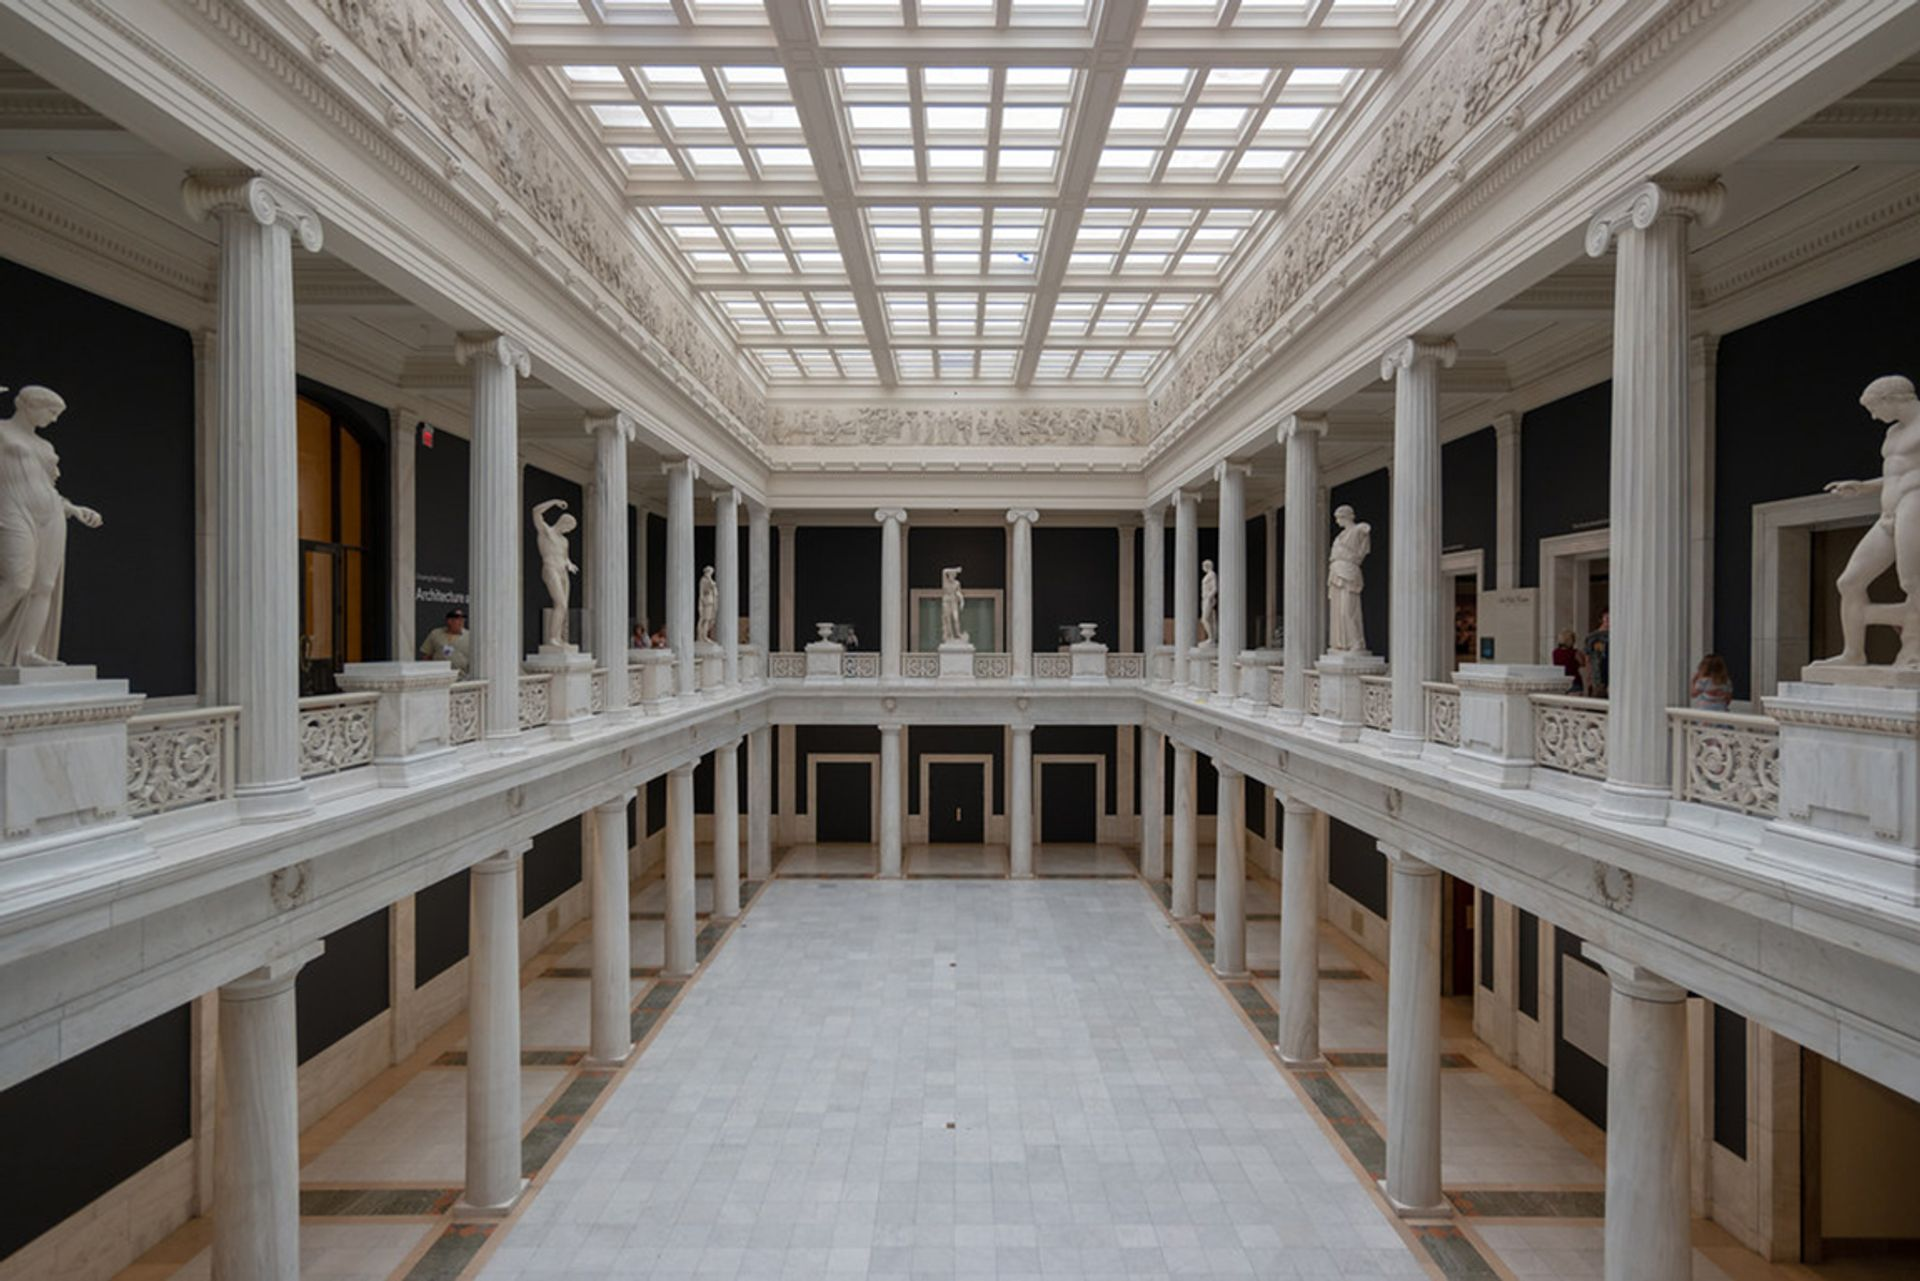 The architecture wing at the Carnegie Museum of Art in Pittsburgh